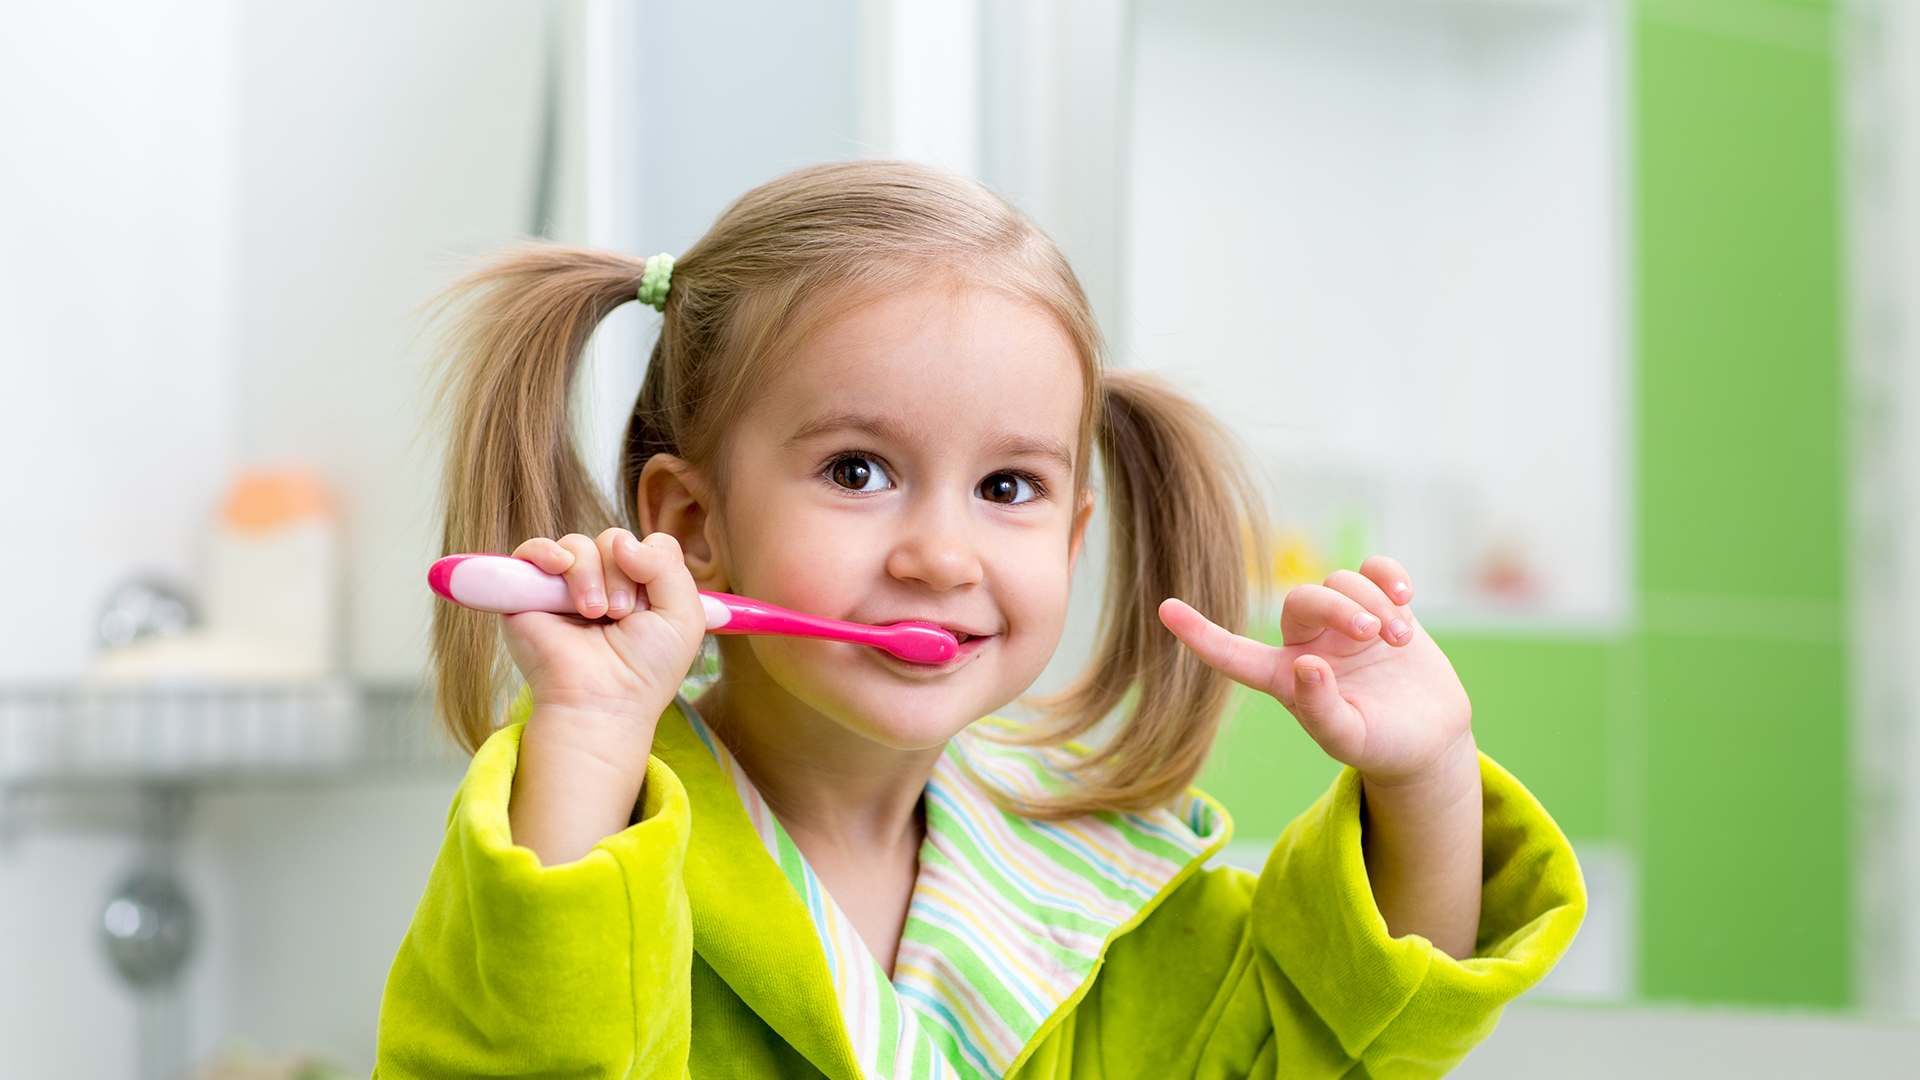 A young girl brushing her teeth and smiling